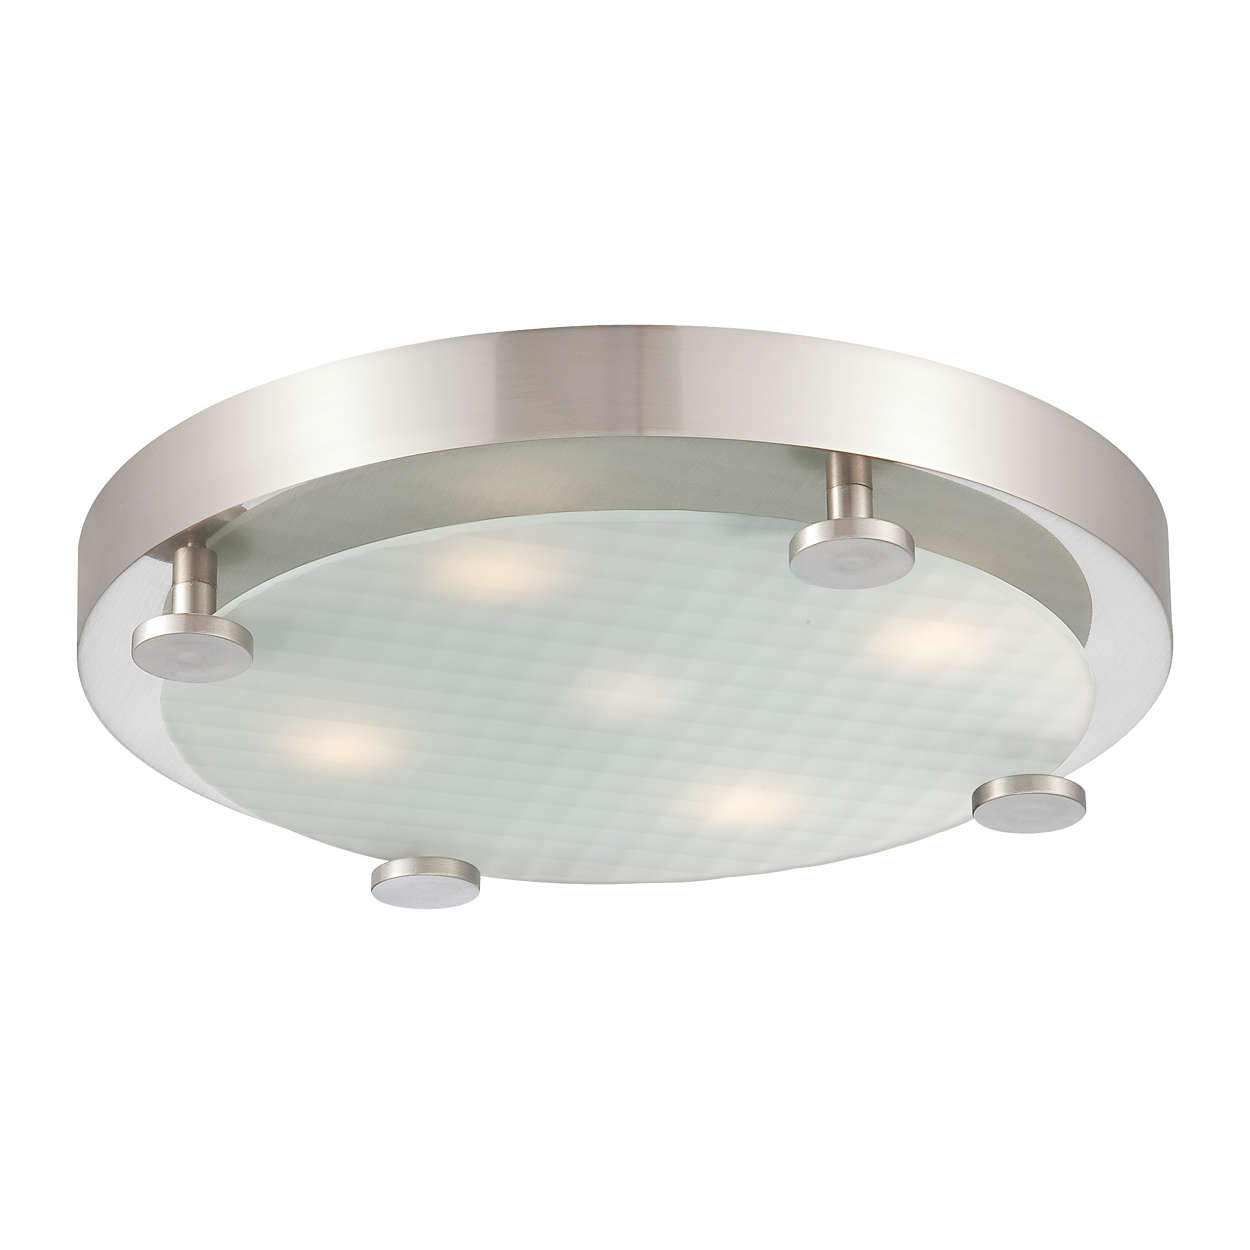 Philips Led Ceiling Lights Catalogues : Ceiling light philips